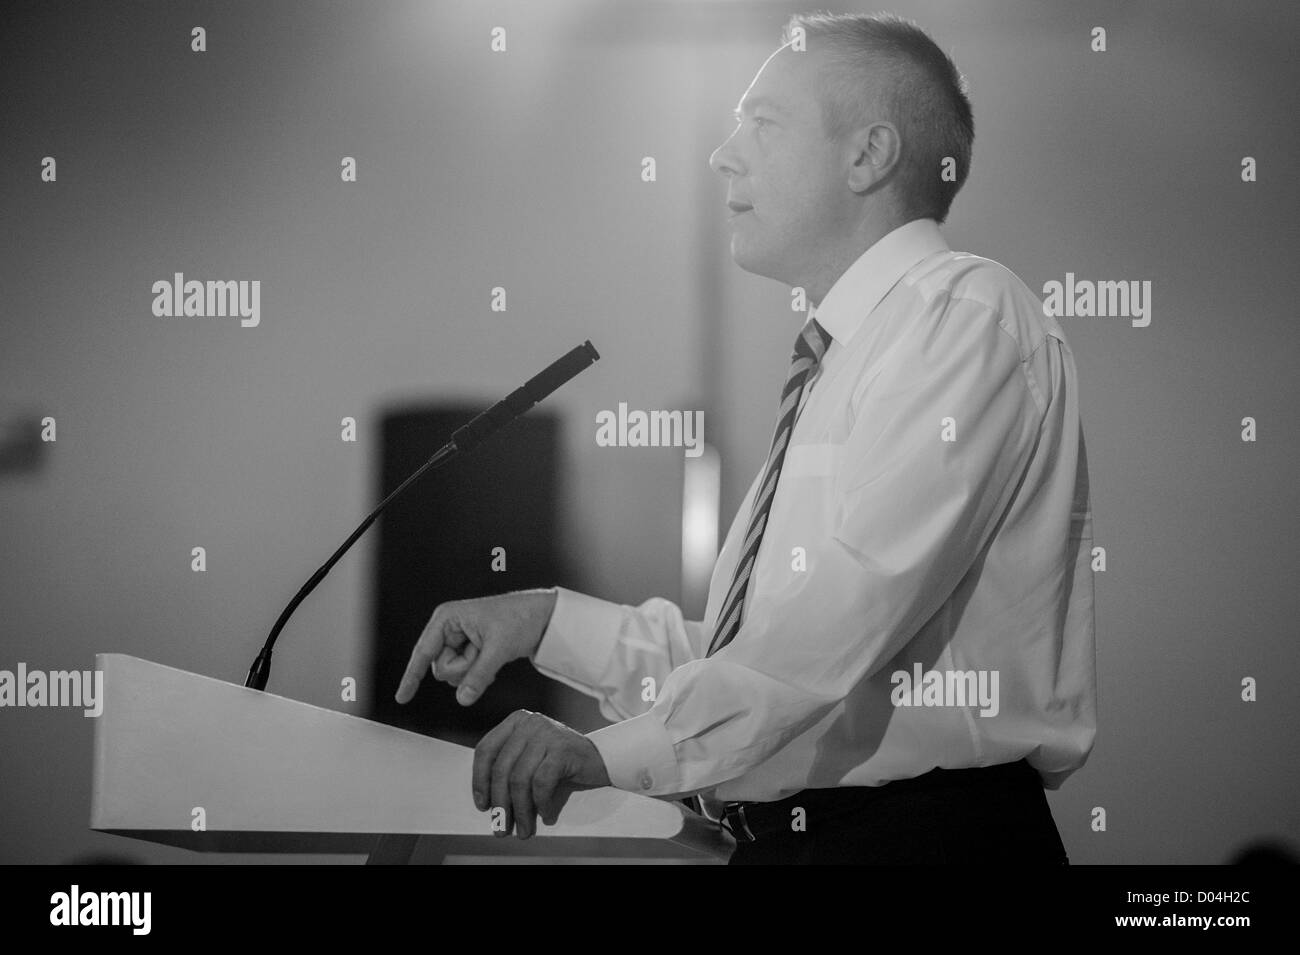 Barcelona, Spain. 16th November 2012. Pere Navarro, candidate,  during his speech in the meeting of PSC party in - Stock Image